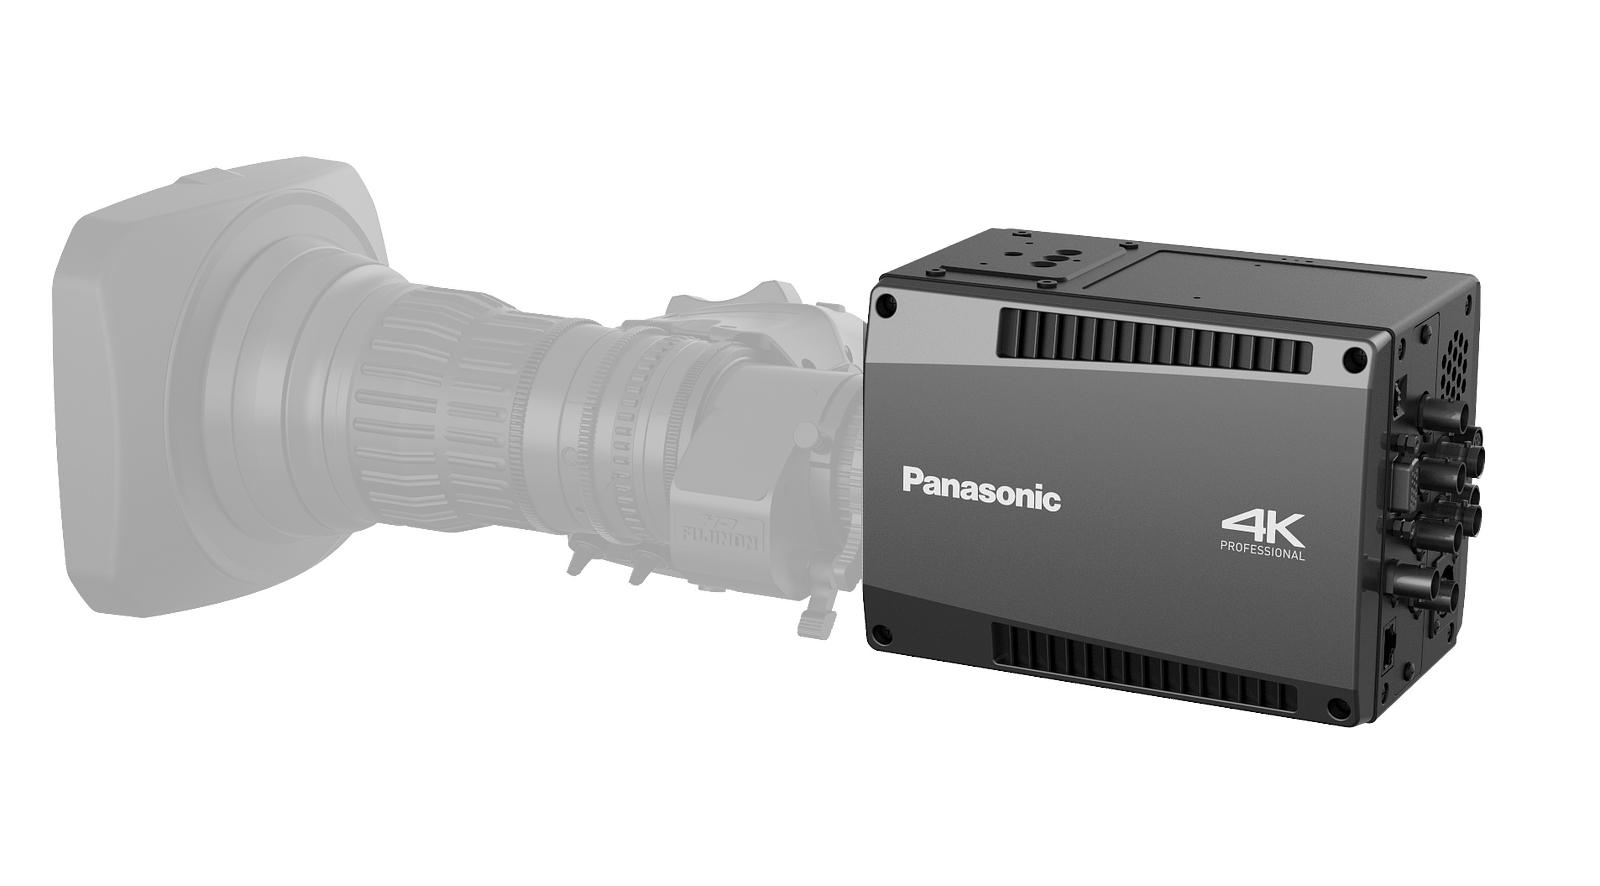 Panasonic AK-UB300 Rear Angle